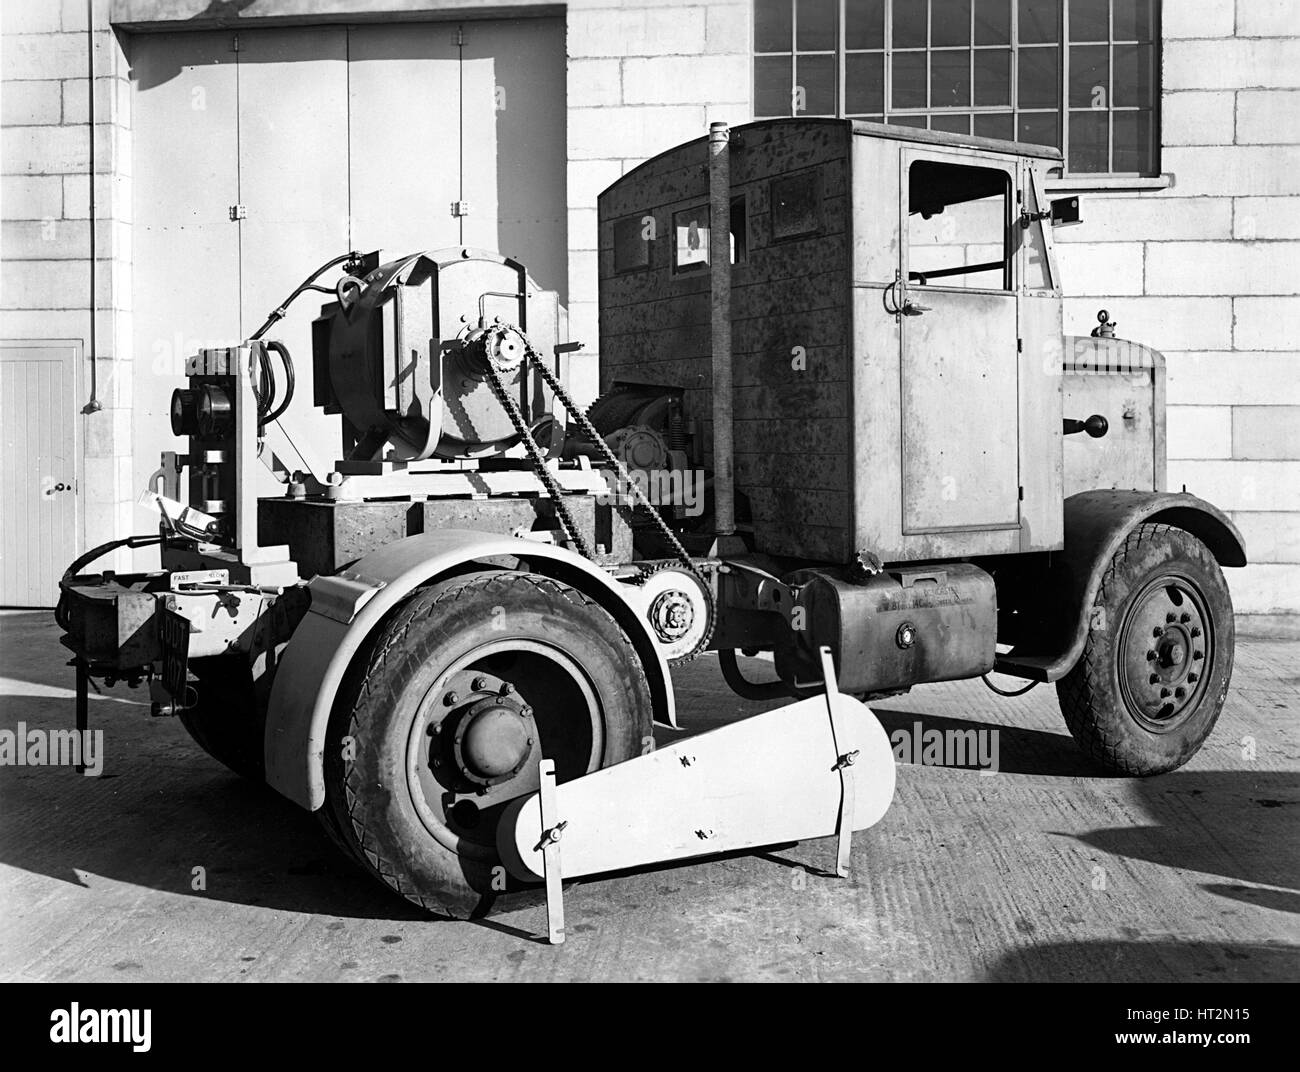 1946 Scammell Chain drive Special tractor Artist: Unknown. - Stock Image